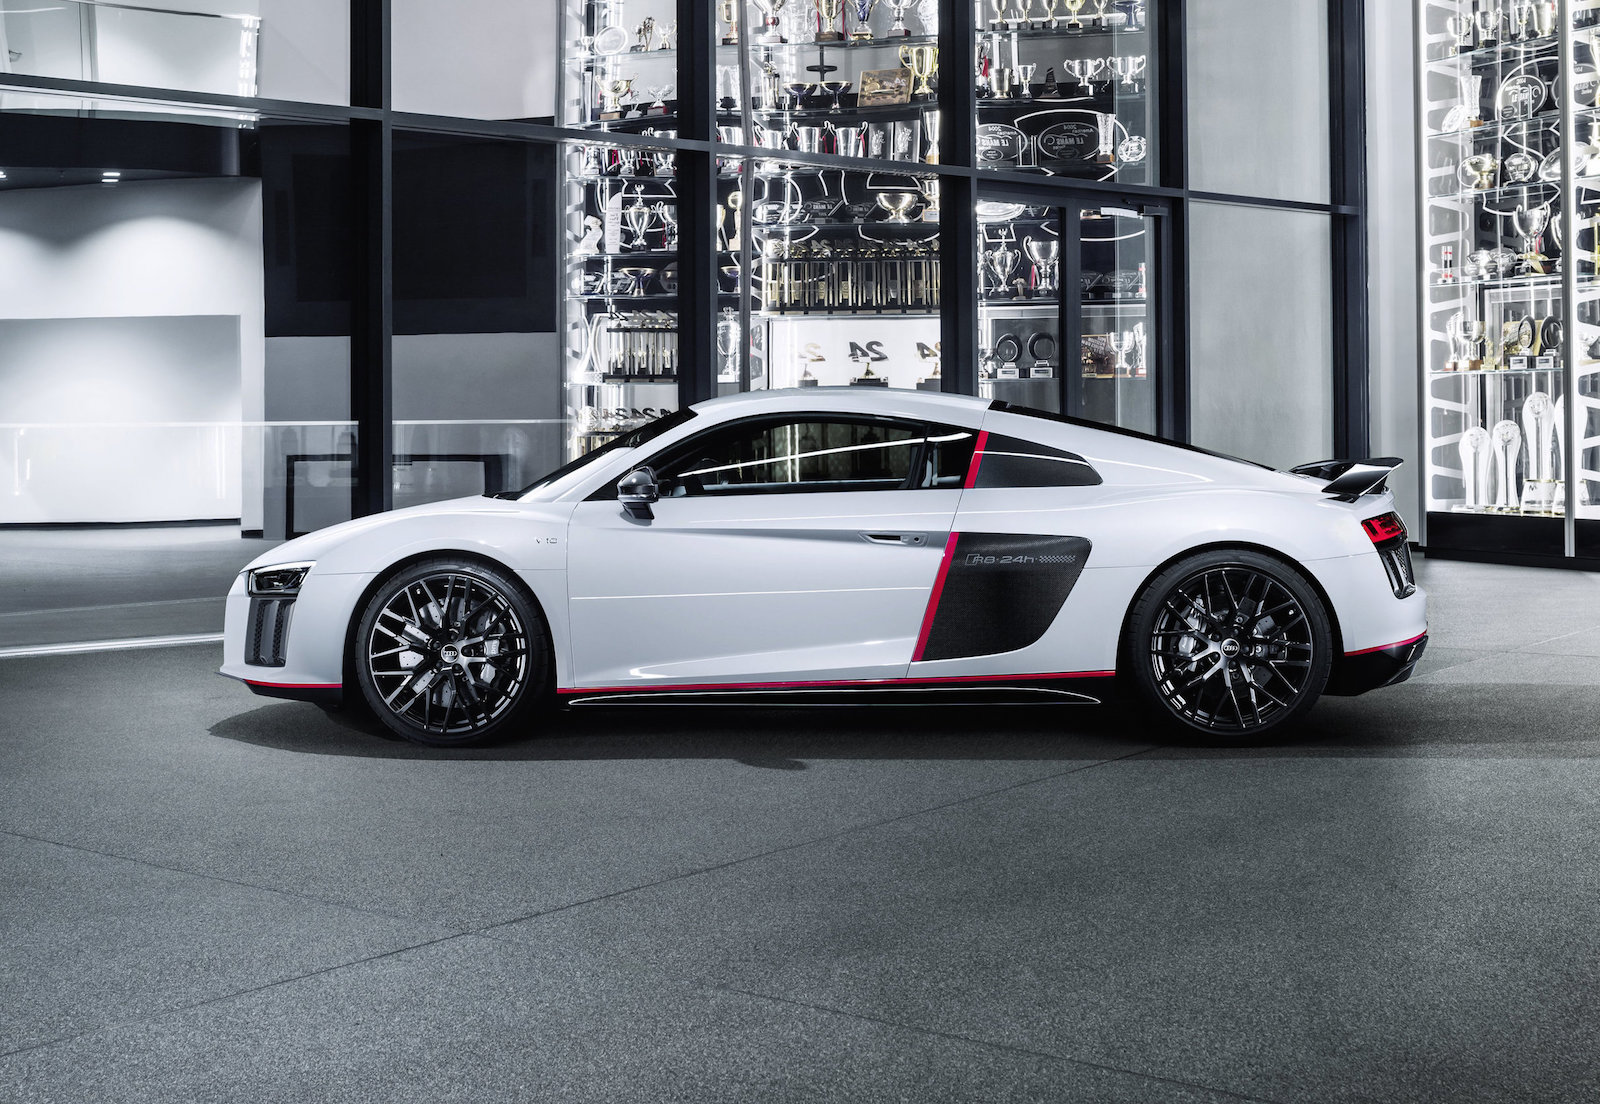 audi r8 v10 39 selection 24h 39 special edition announced performancedrive. Black Bedroom Furniture Sets. Home Design Ideas